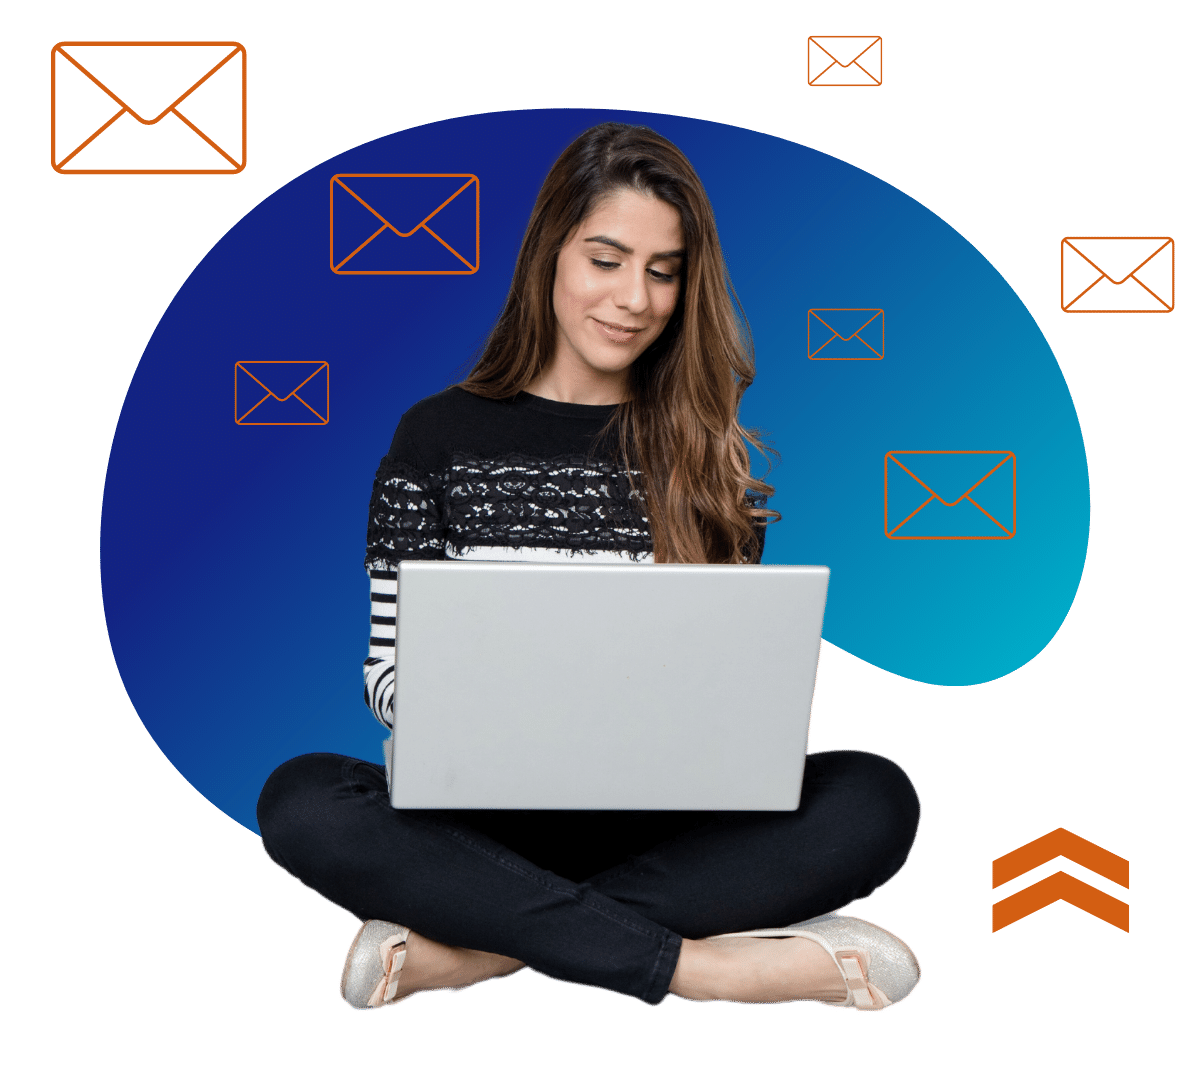 email lady 2